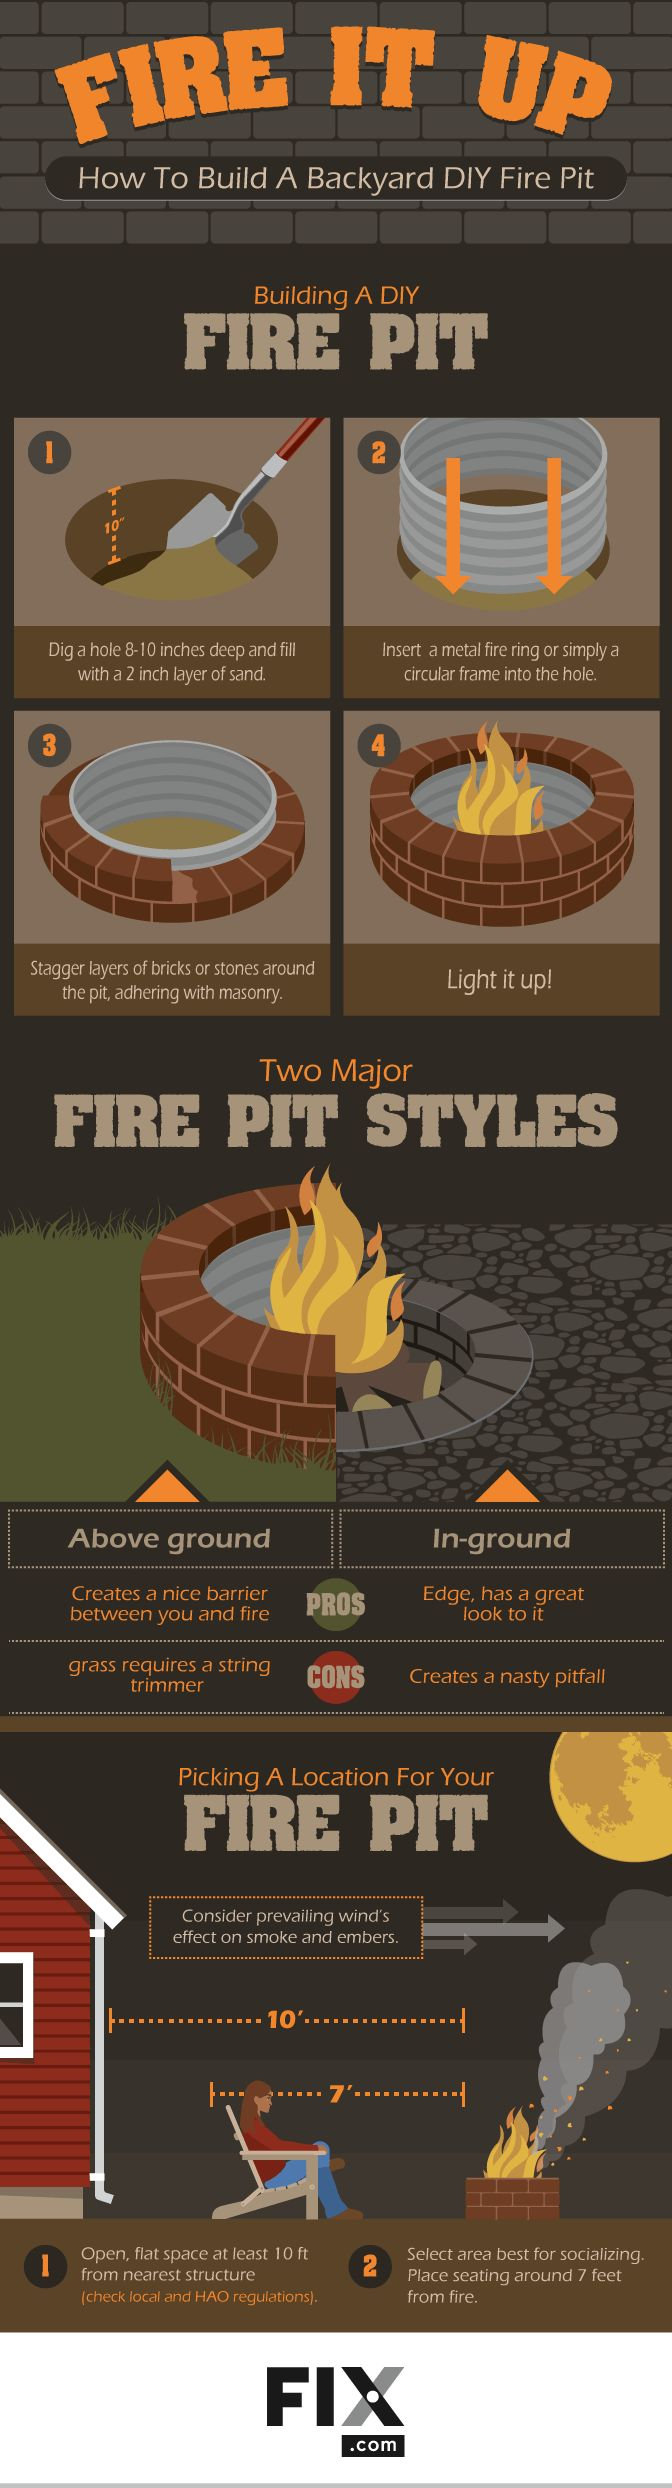 Fire's burning, fire's burning, draw nearer, draw nearer! Family and friends will all be coming to visit when you have a new fire pit in your backyard!